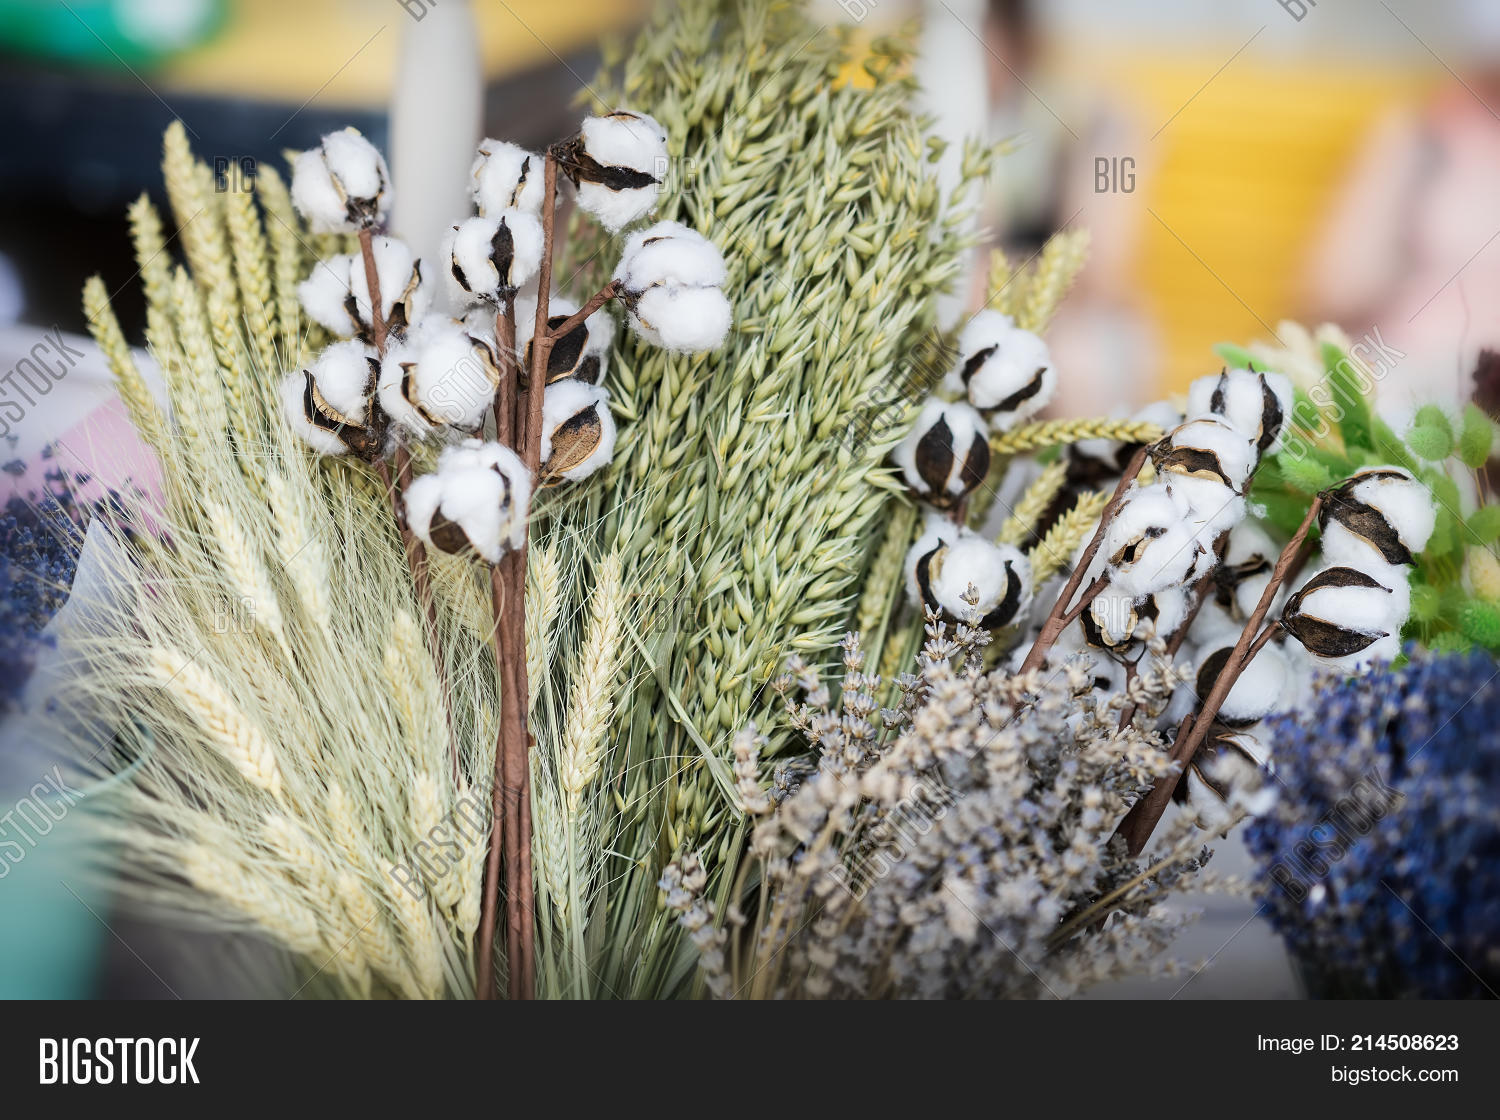 Close-up of creative bouquets of dried flowers with dried Gossypium branch  or cotton stem